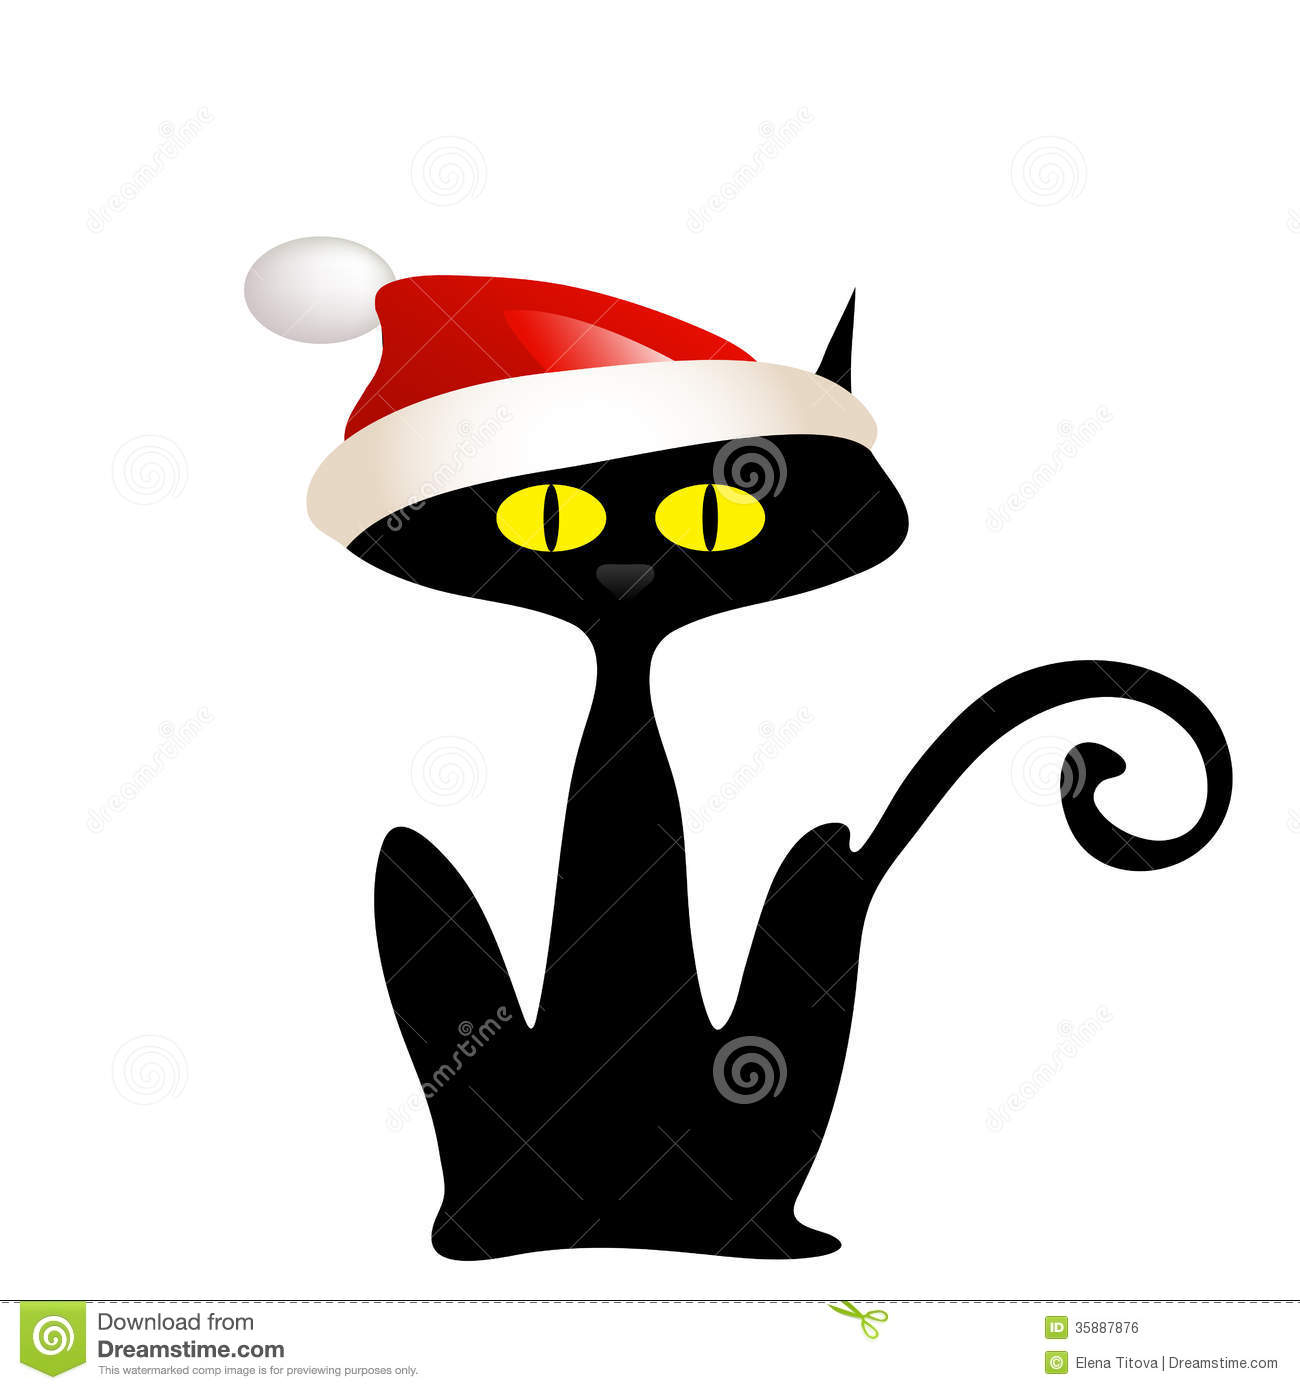 Displaying Images For - Cat In The Hat Hat Clip Art...